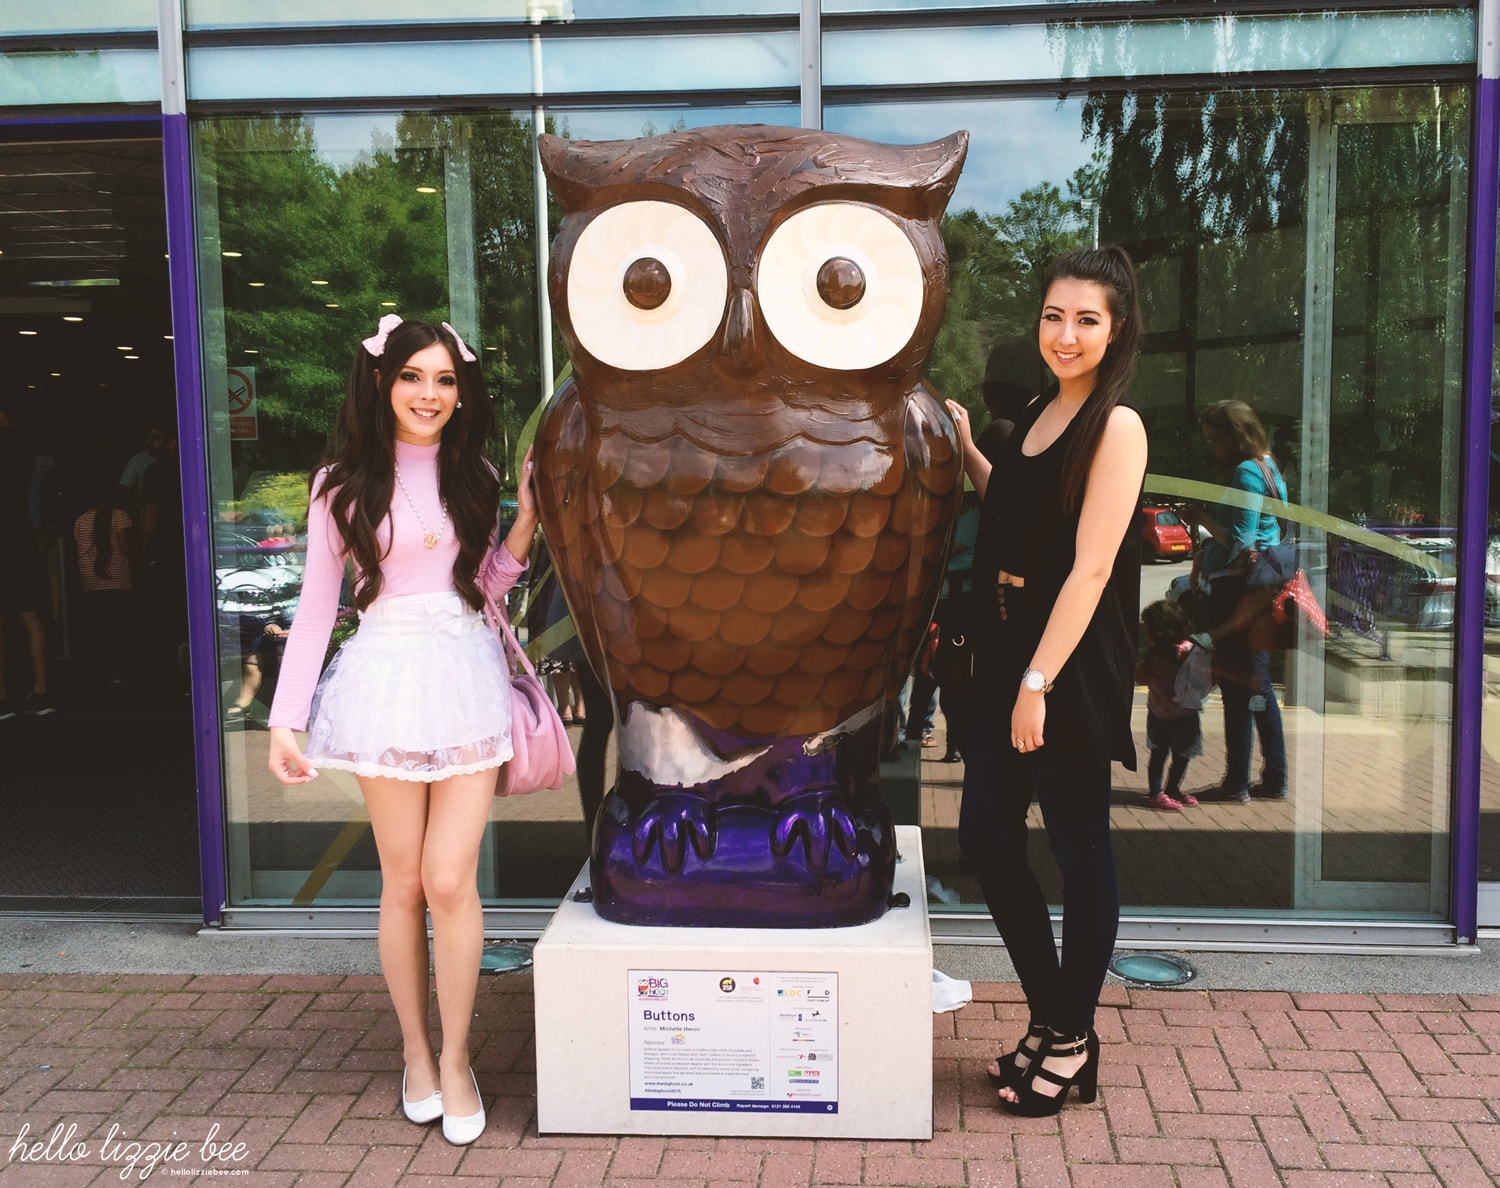 cadbury world owl statue